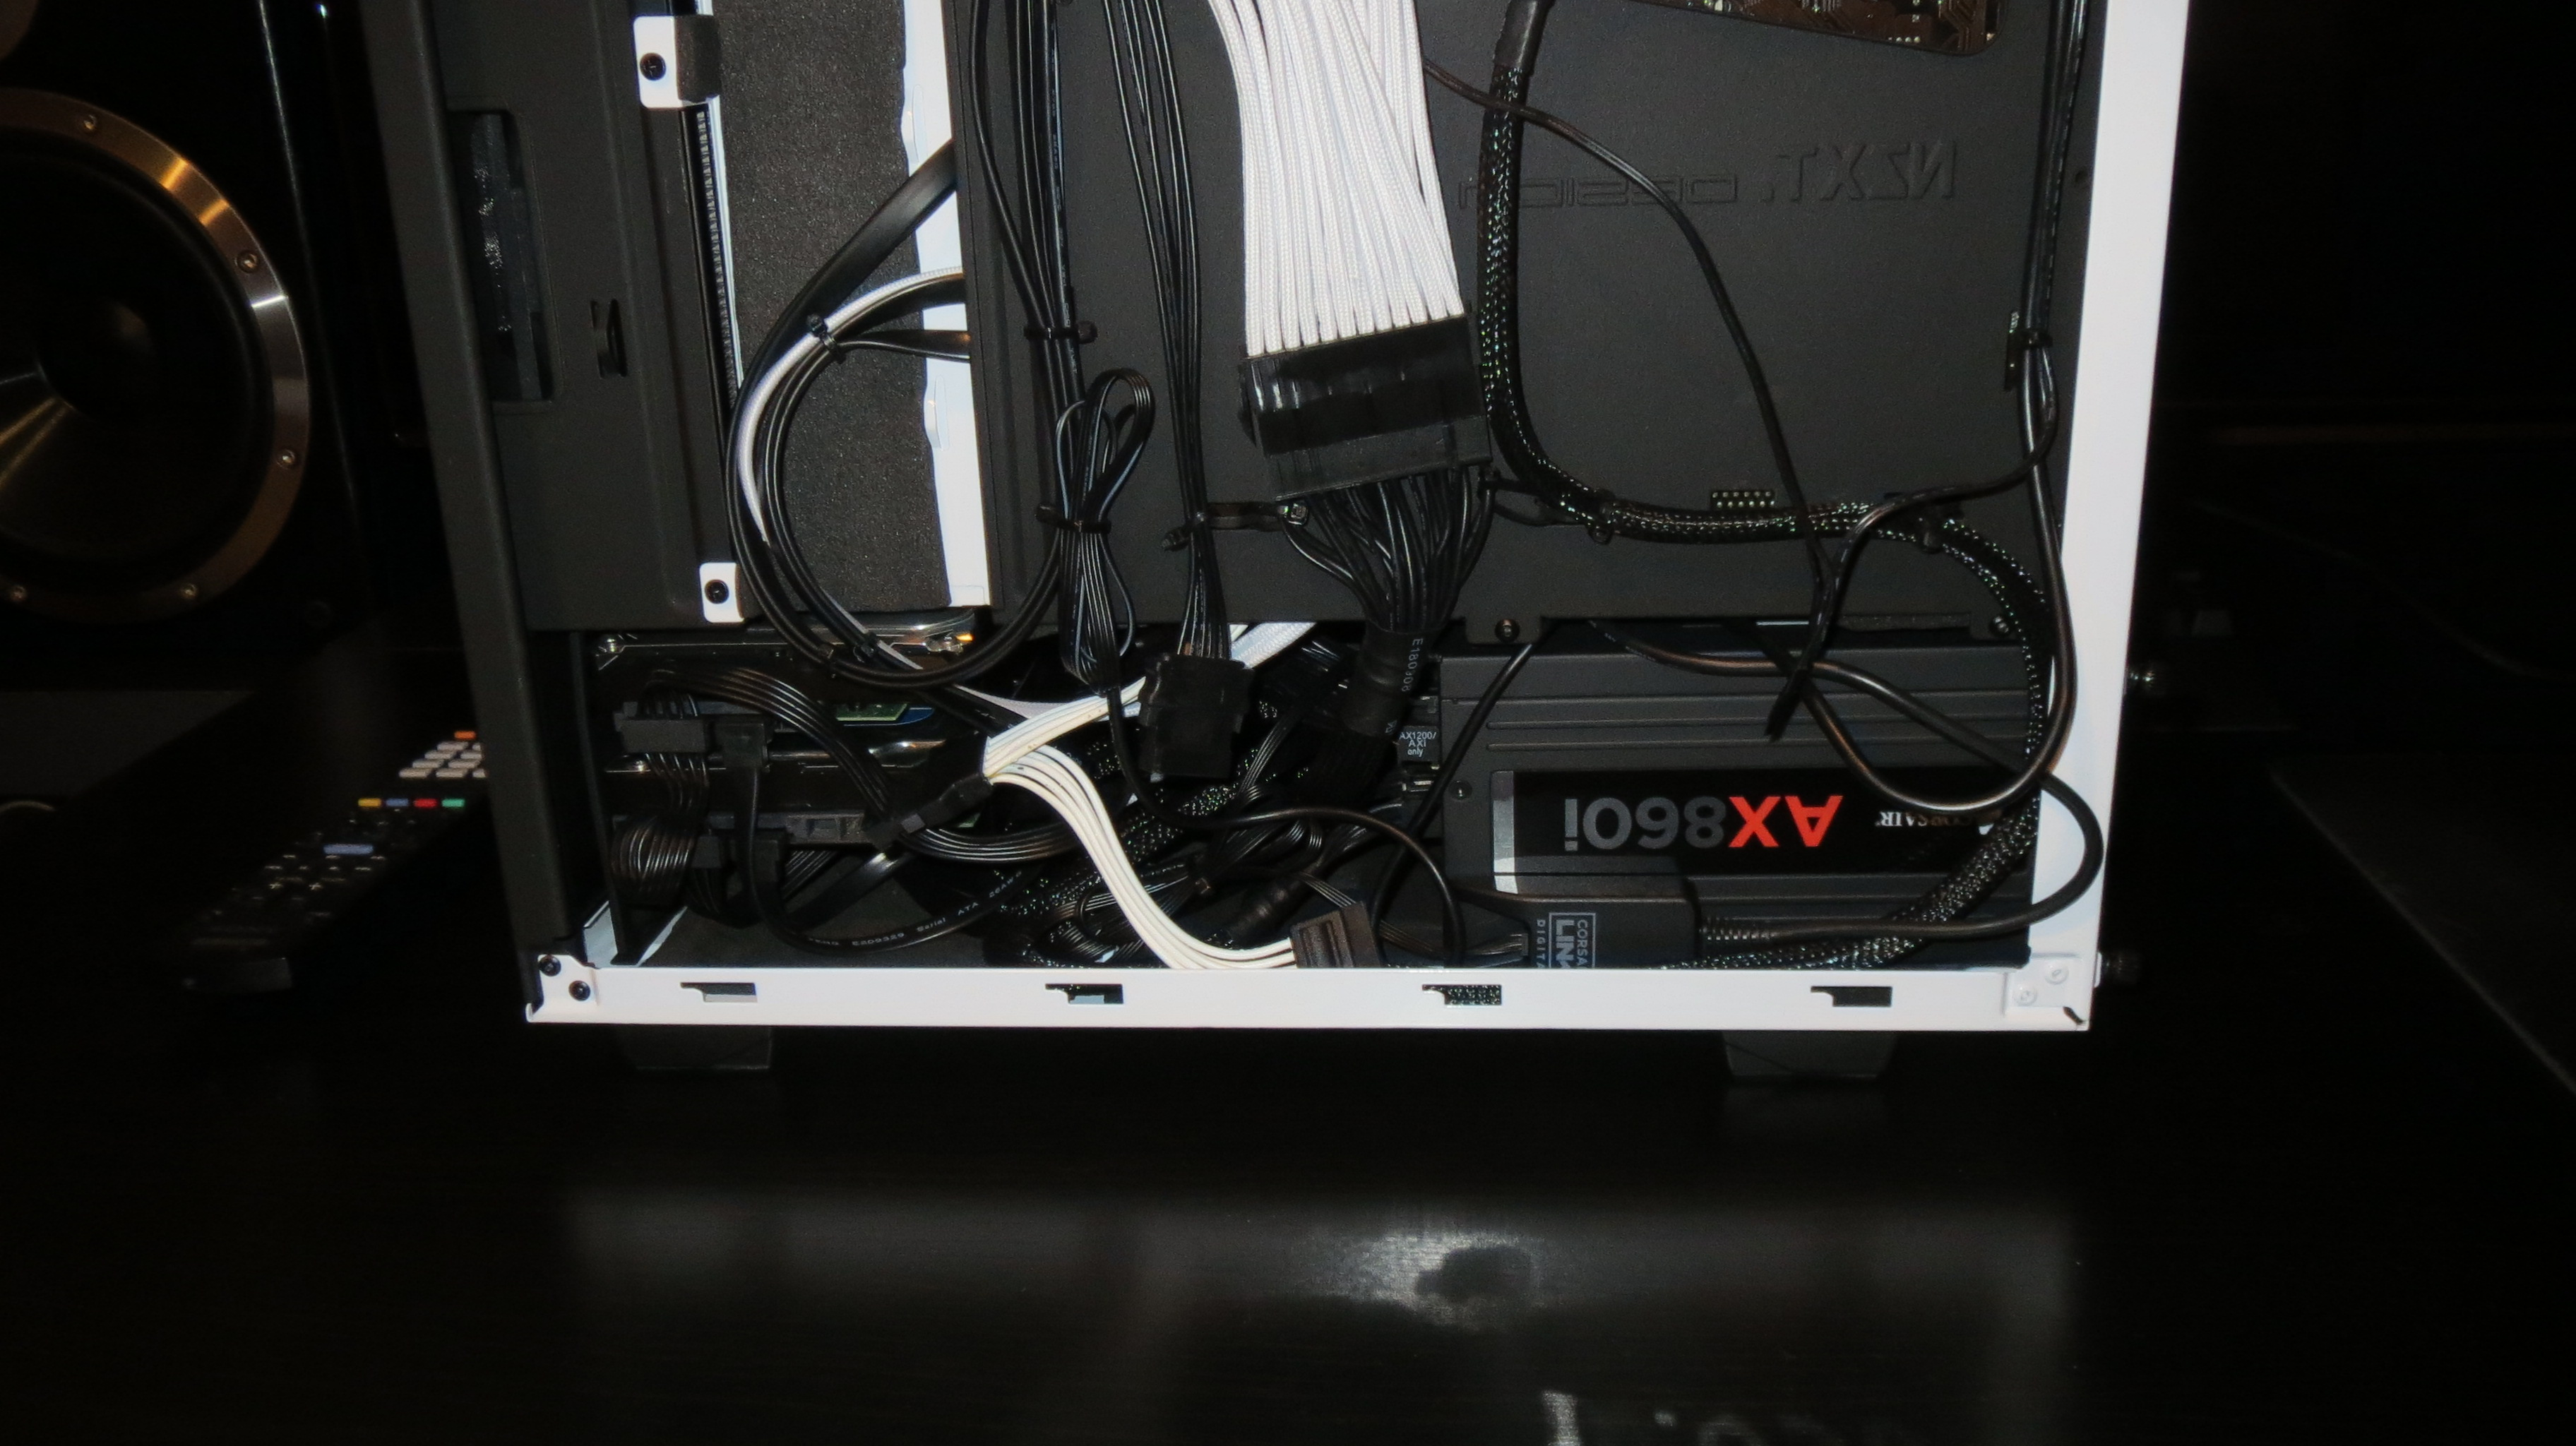 Custom AX860i fan mod! - Case Modding and Other Mods - Linus Tech Tips